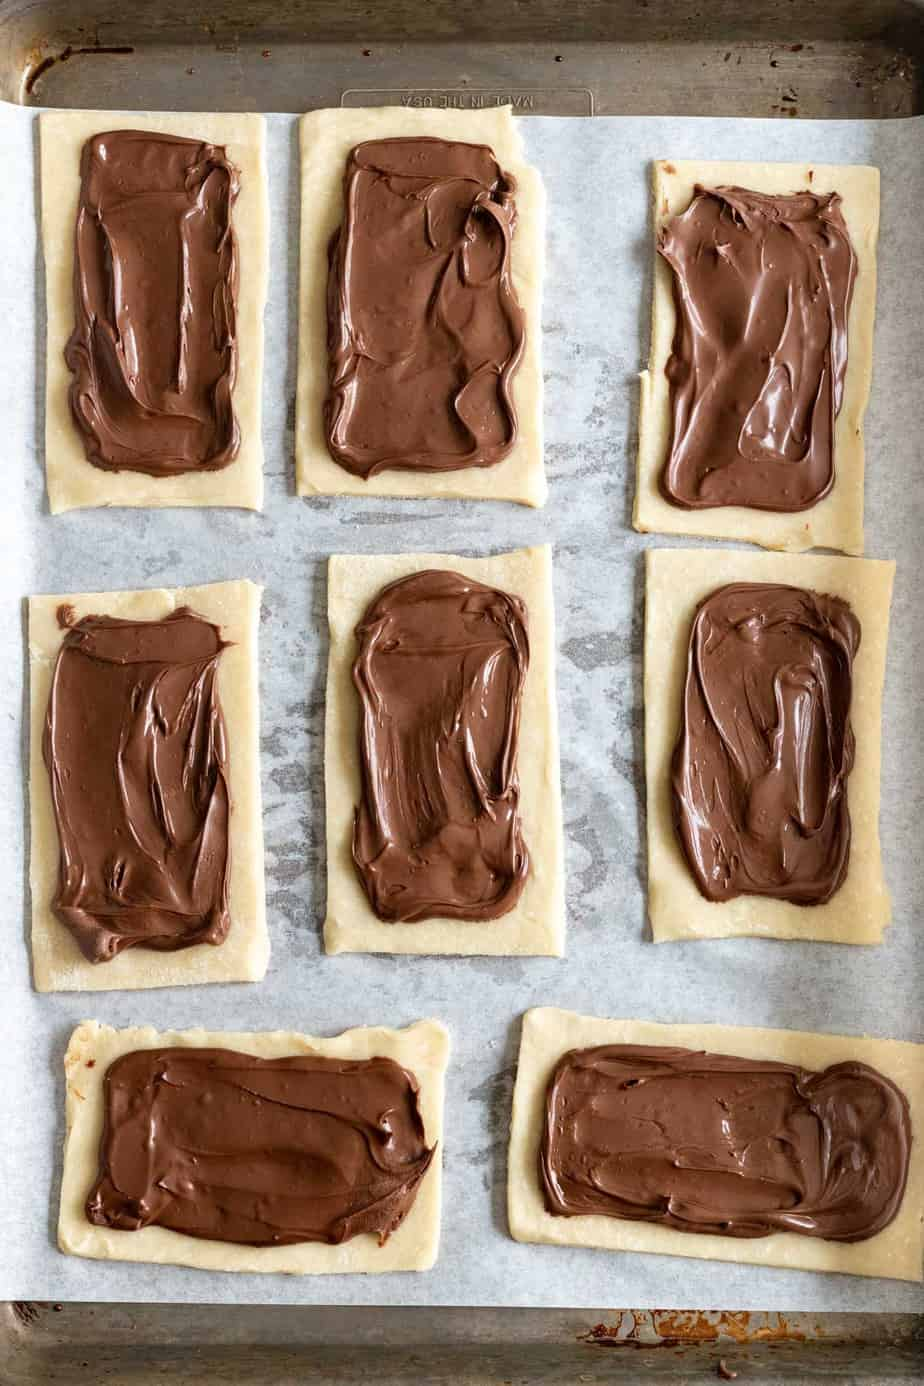 nutella spread on 8 dough rectangles on a baking sheet lined with parchment